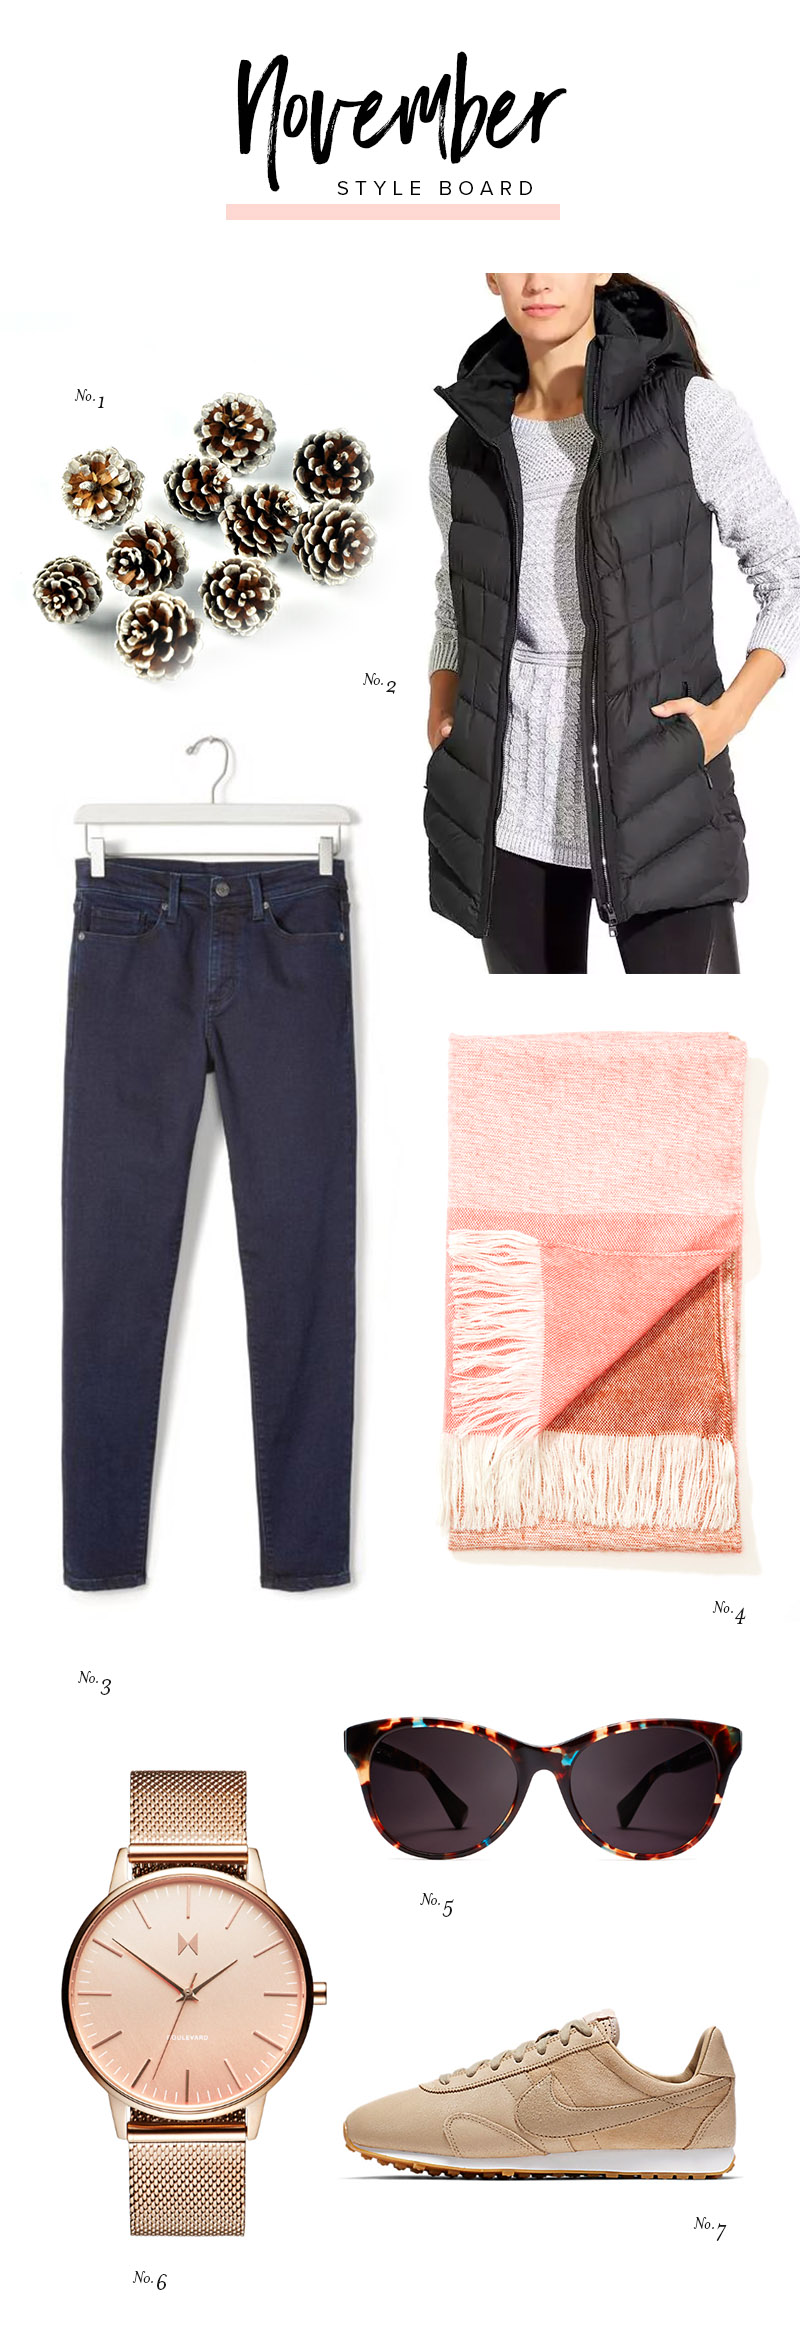 November Fashion Style Board.jpg